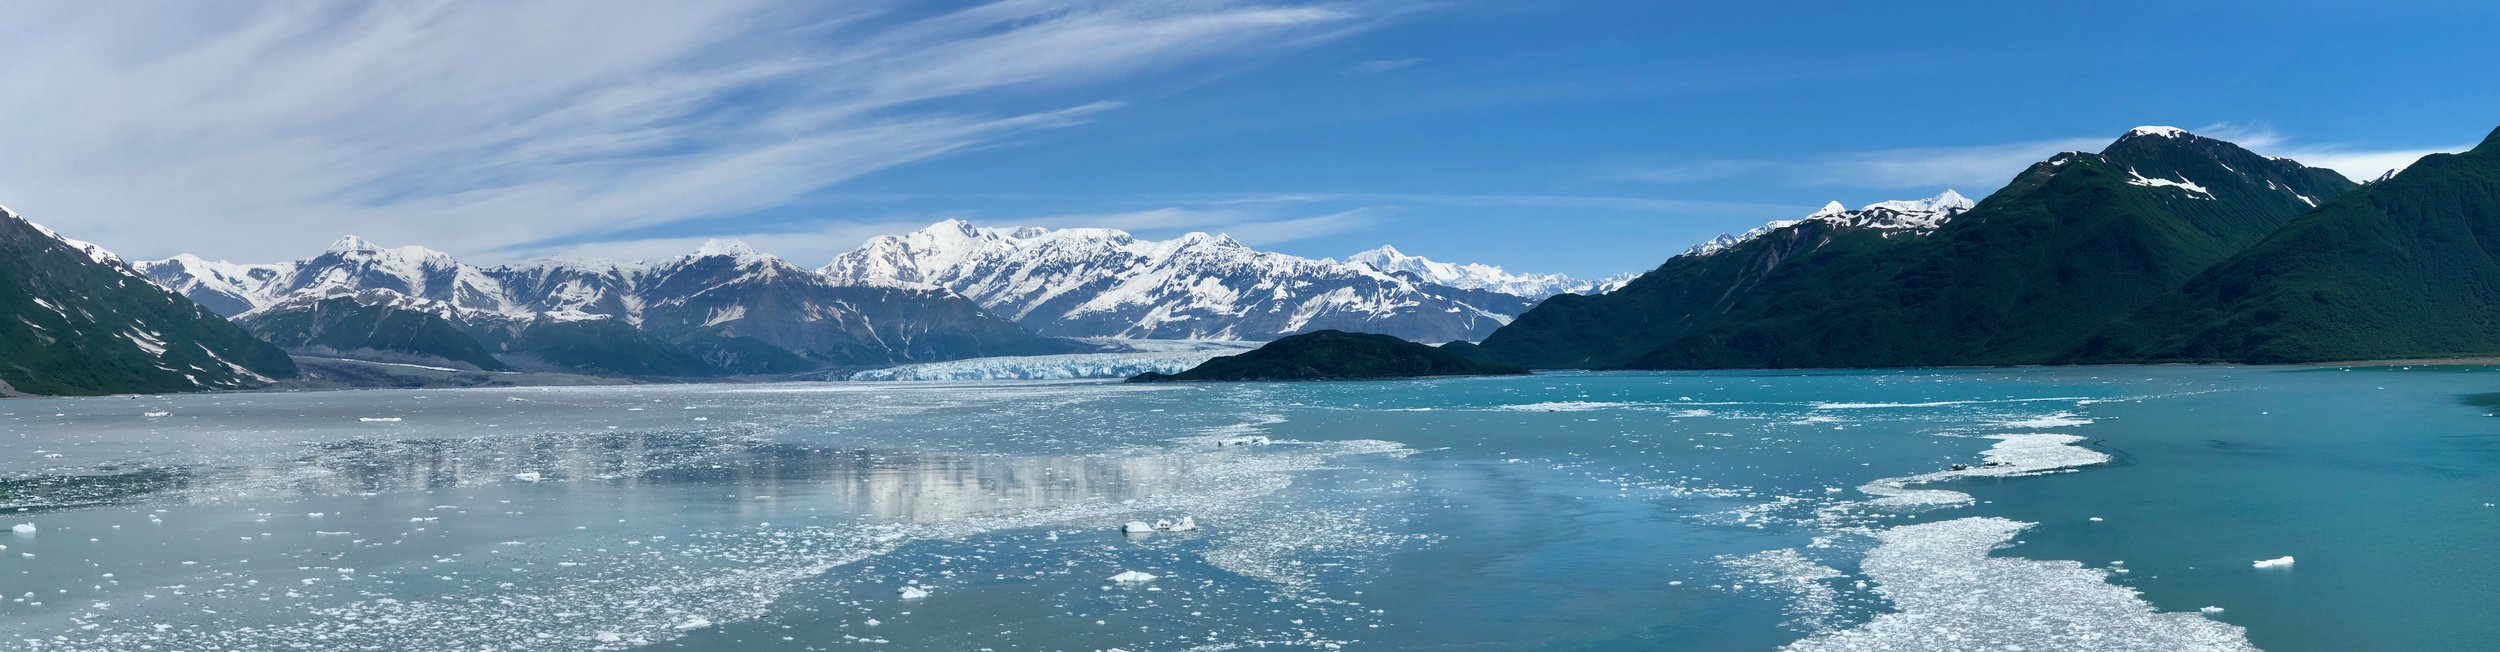 The captain did an amazing job getting the ship through the tide line, and into the ice to get us close to the glacier.